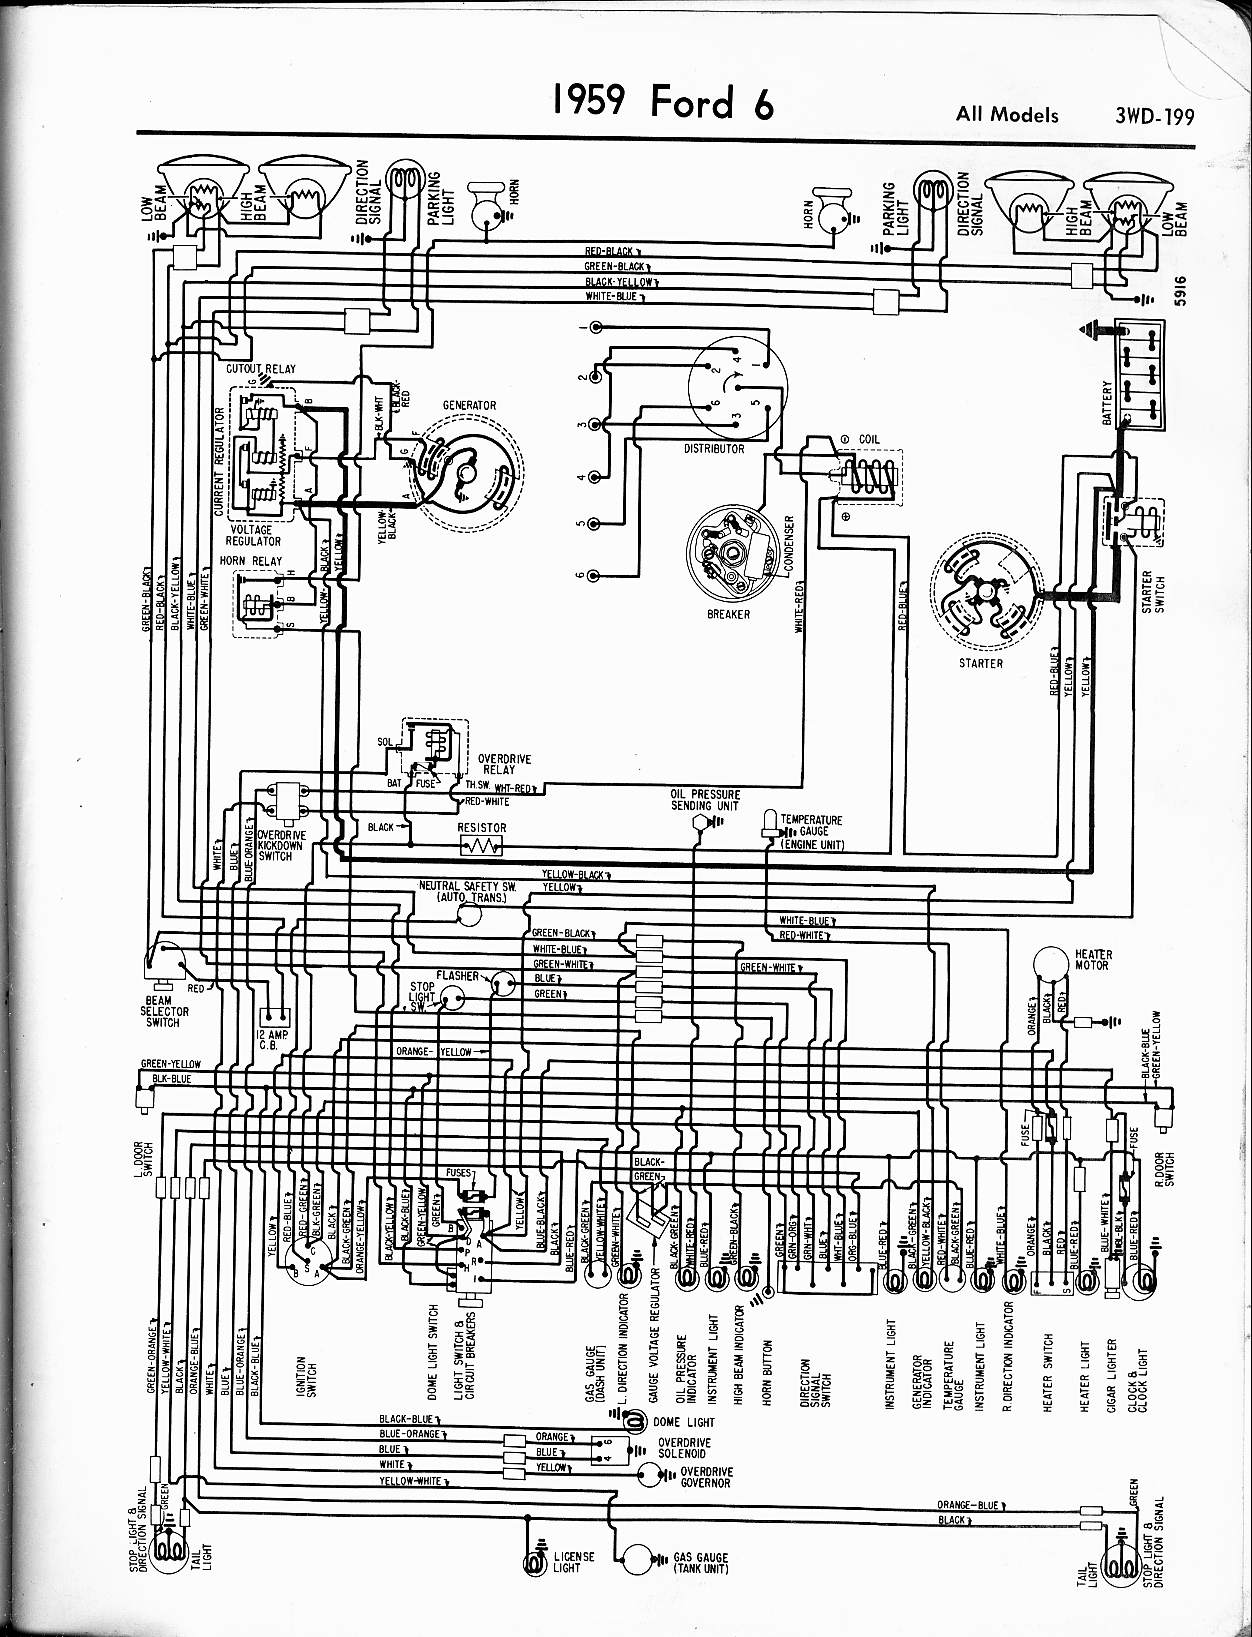 1963 ford falcon wiring harness 1963 image wiring 1960 ford ranchero wiring harness 1960 auto wiring diagram schematic on 1963 ford falcon wiring harness